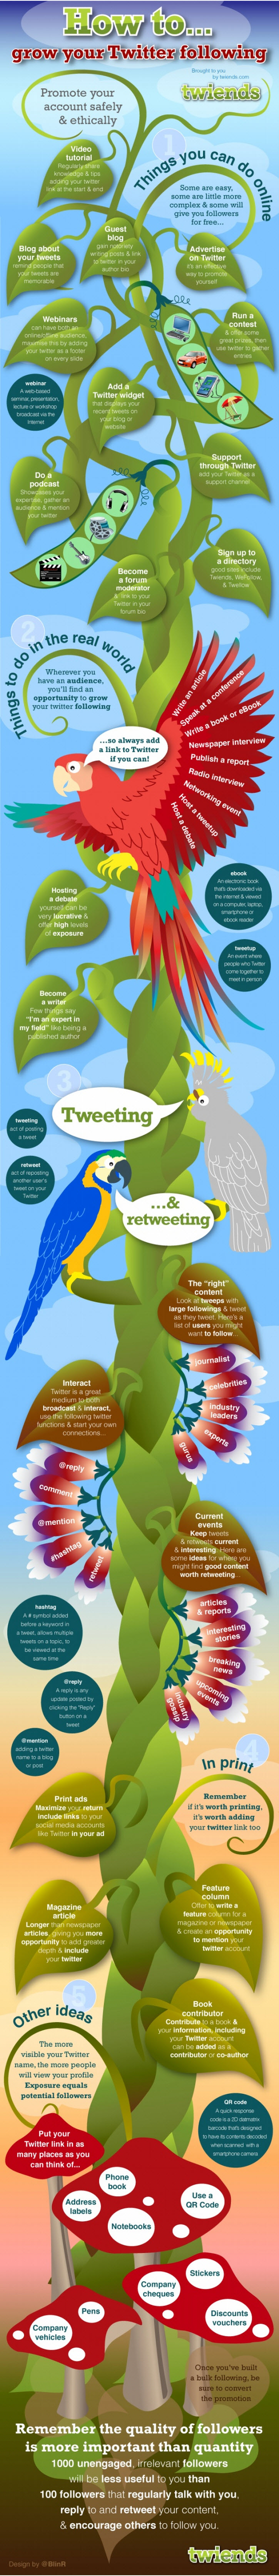 How-to-Increase-your-Twitter-Followers